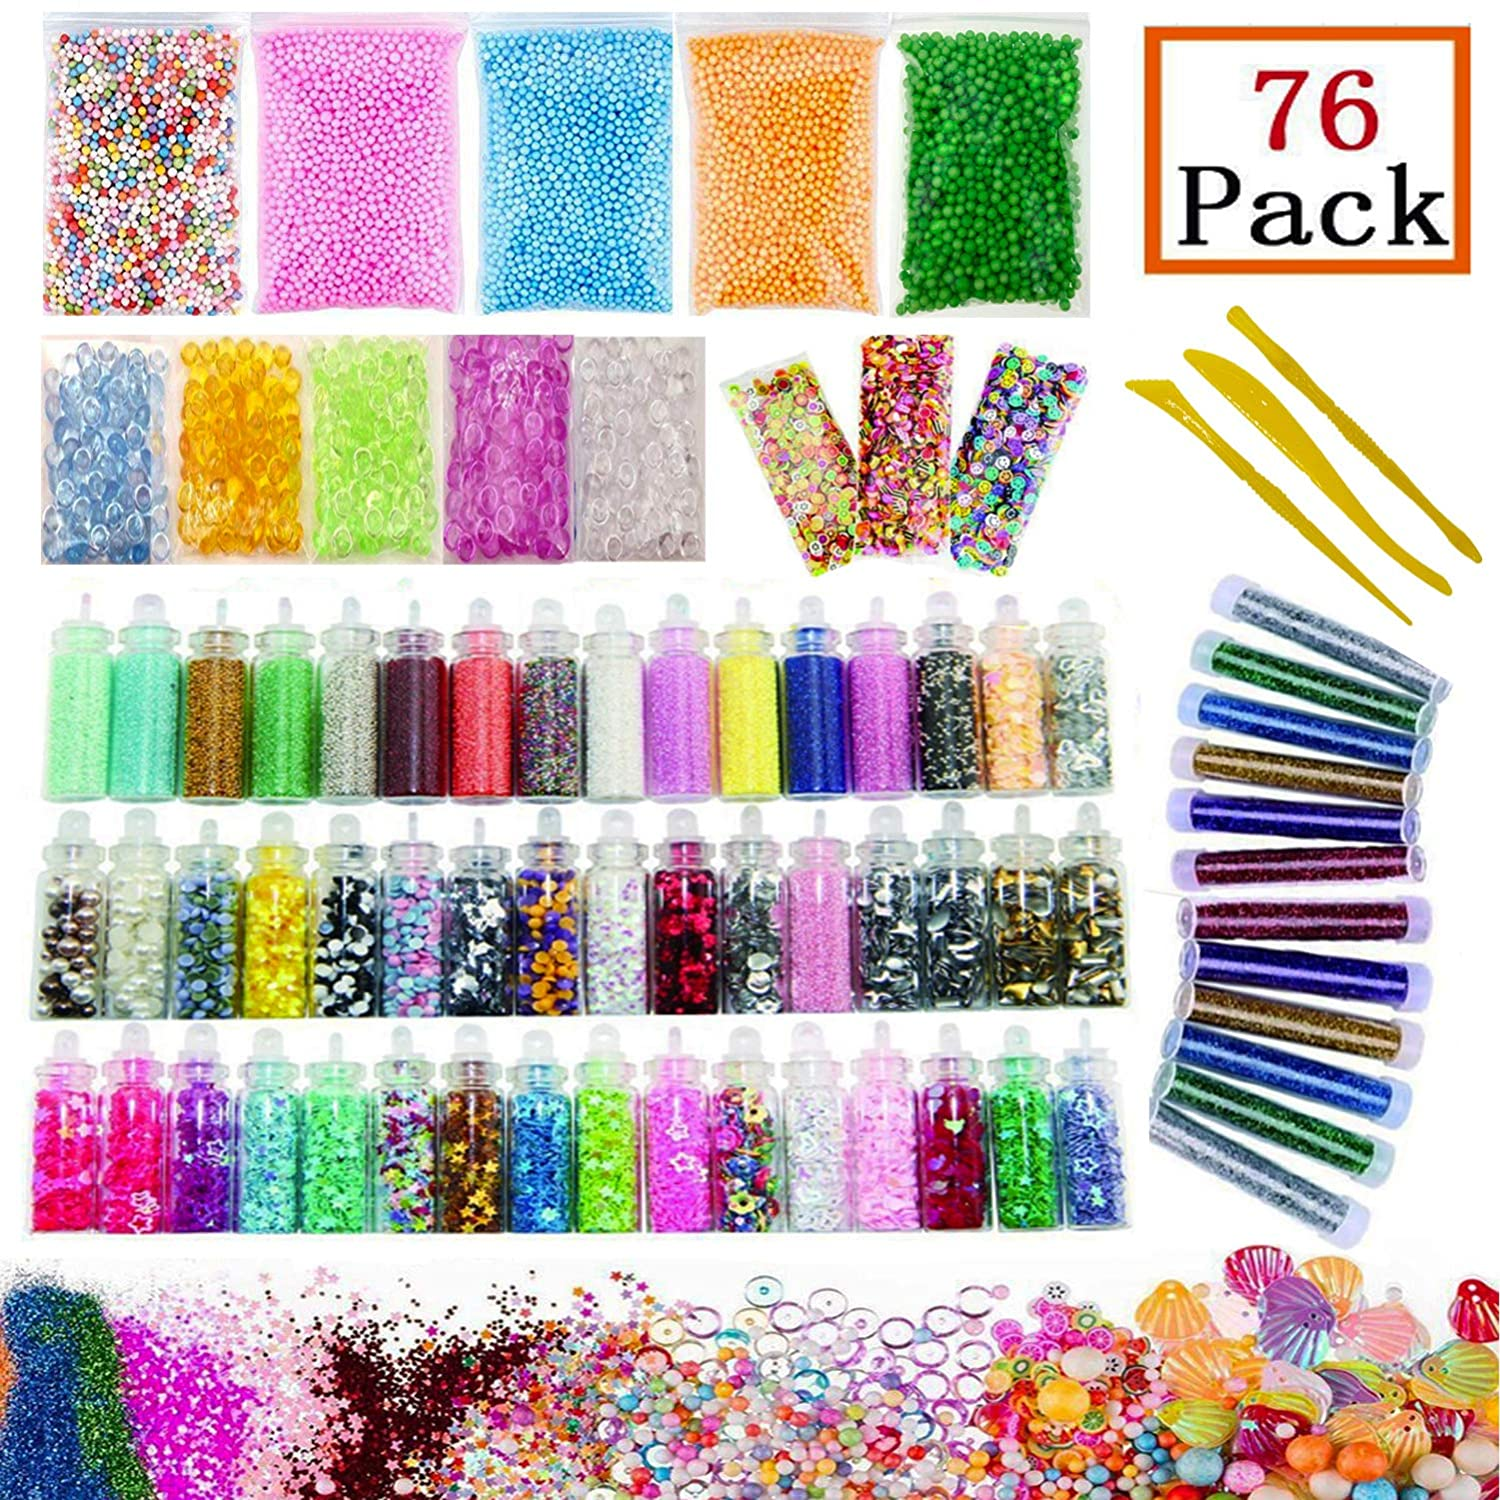 Slime Supplies Kit 76 Packs, Foam Beads, Fishbowl Beads, Glitter Jars, Fruit Slices, Mucus Tool Make Your Own Craft Homemade Sunreal